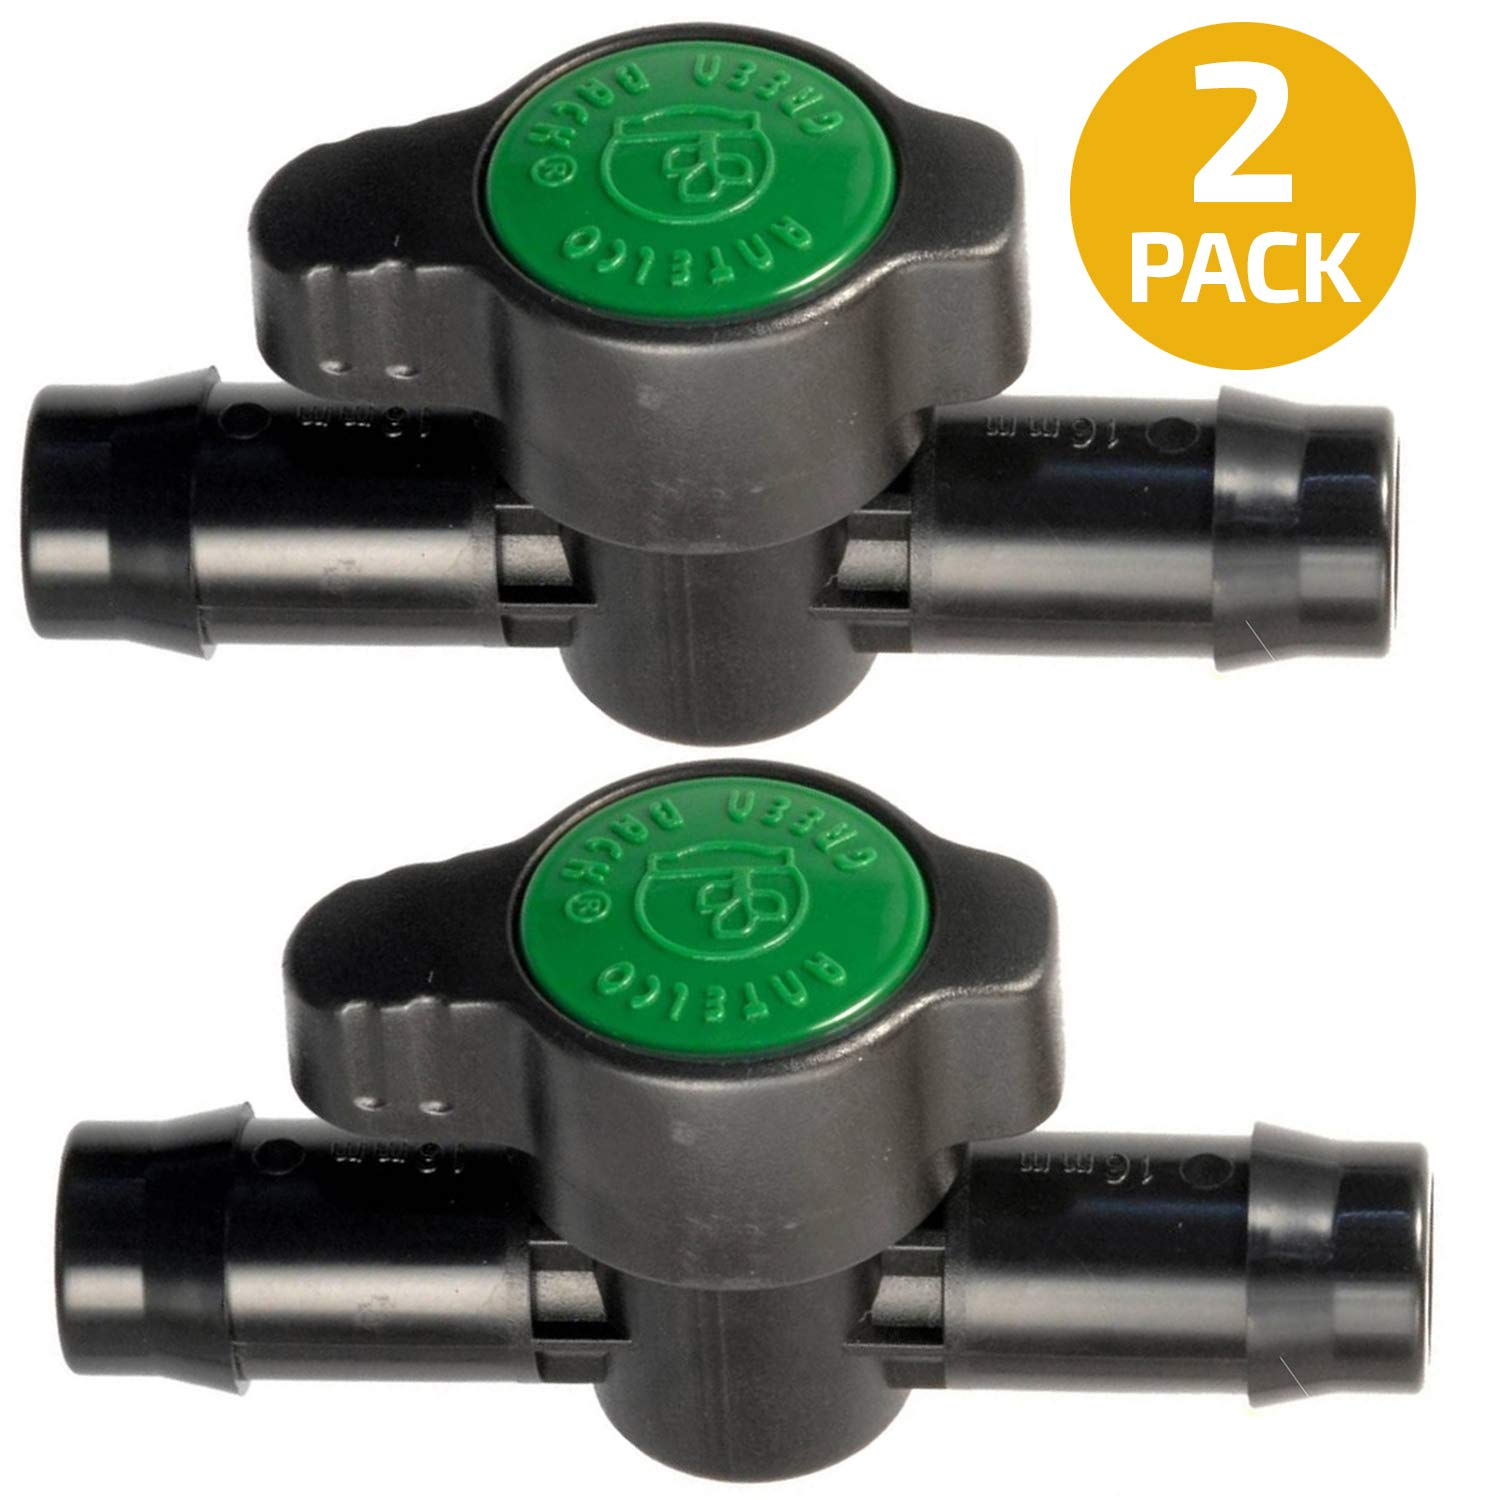 in-Line Coupling Barbed Ball Valve 16mm for 1/2 and 5/8 inch Tubing (.570 to .620 ID) 2-Pack - Regulate Water Flow/Shut Off in Aquariums, Hydroponics and Drip Irrigation by Habitech